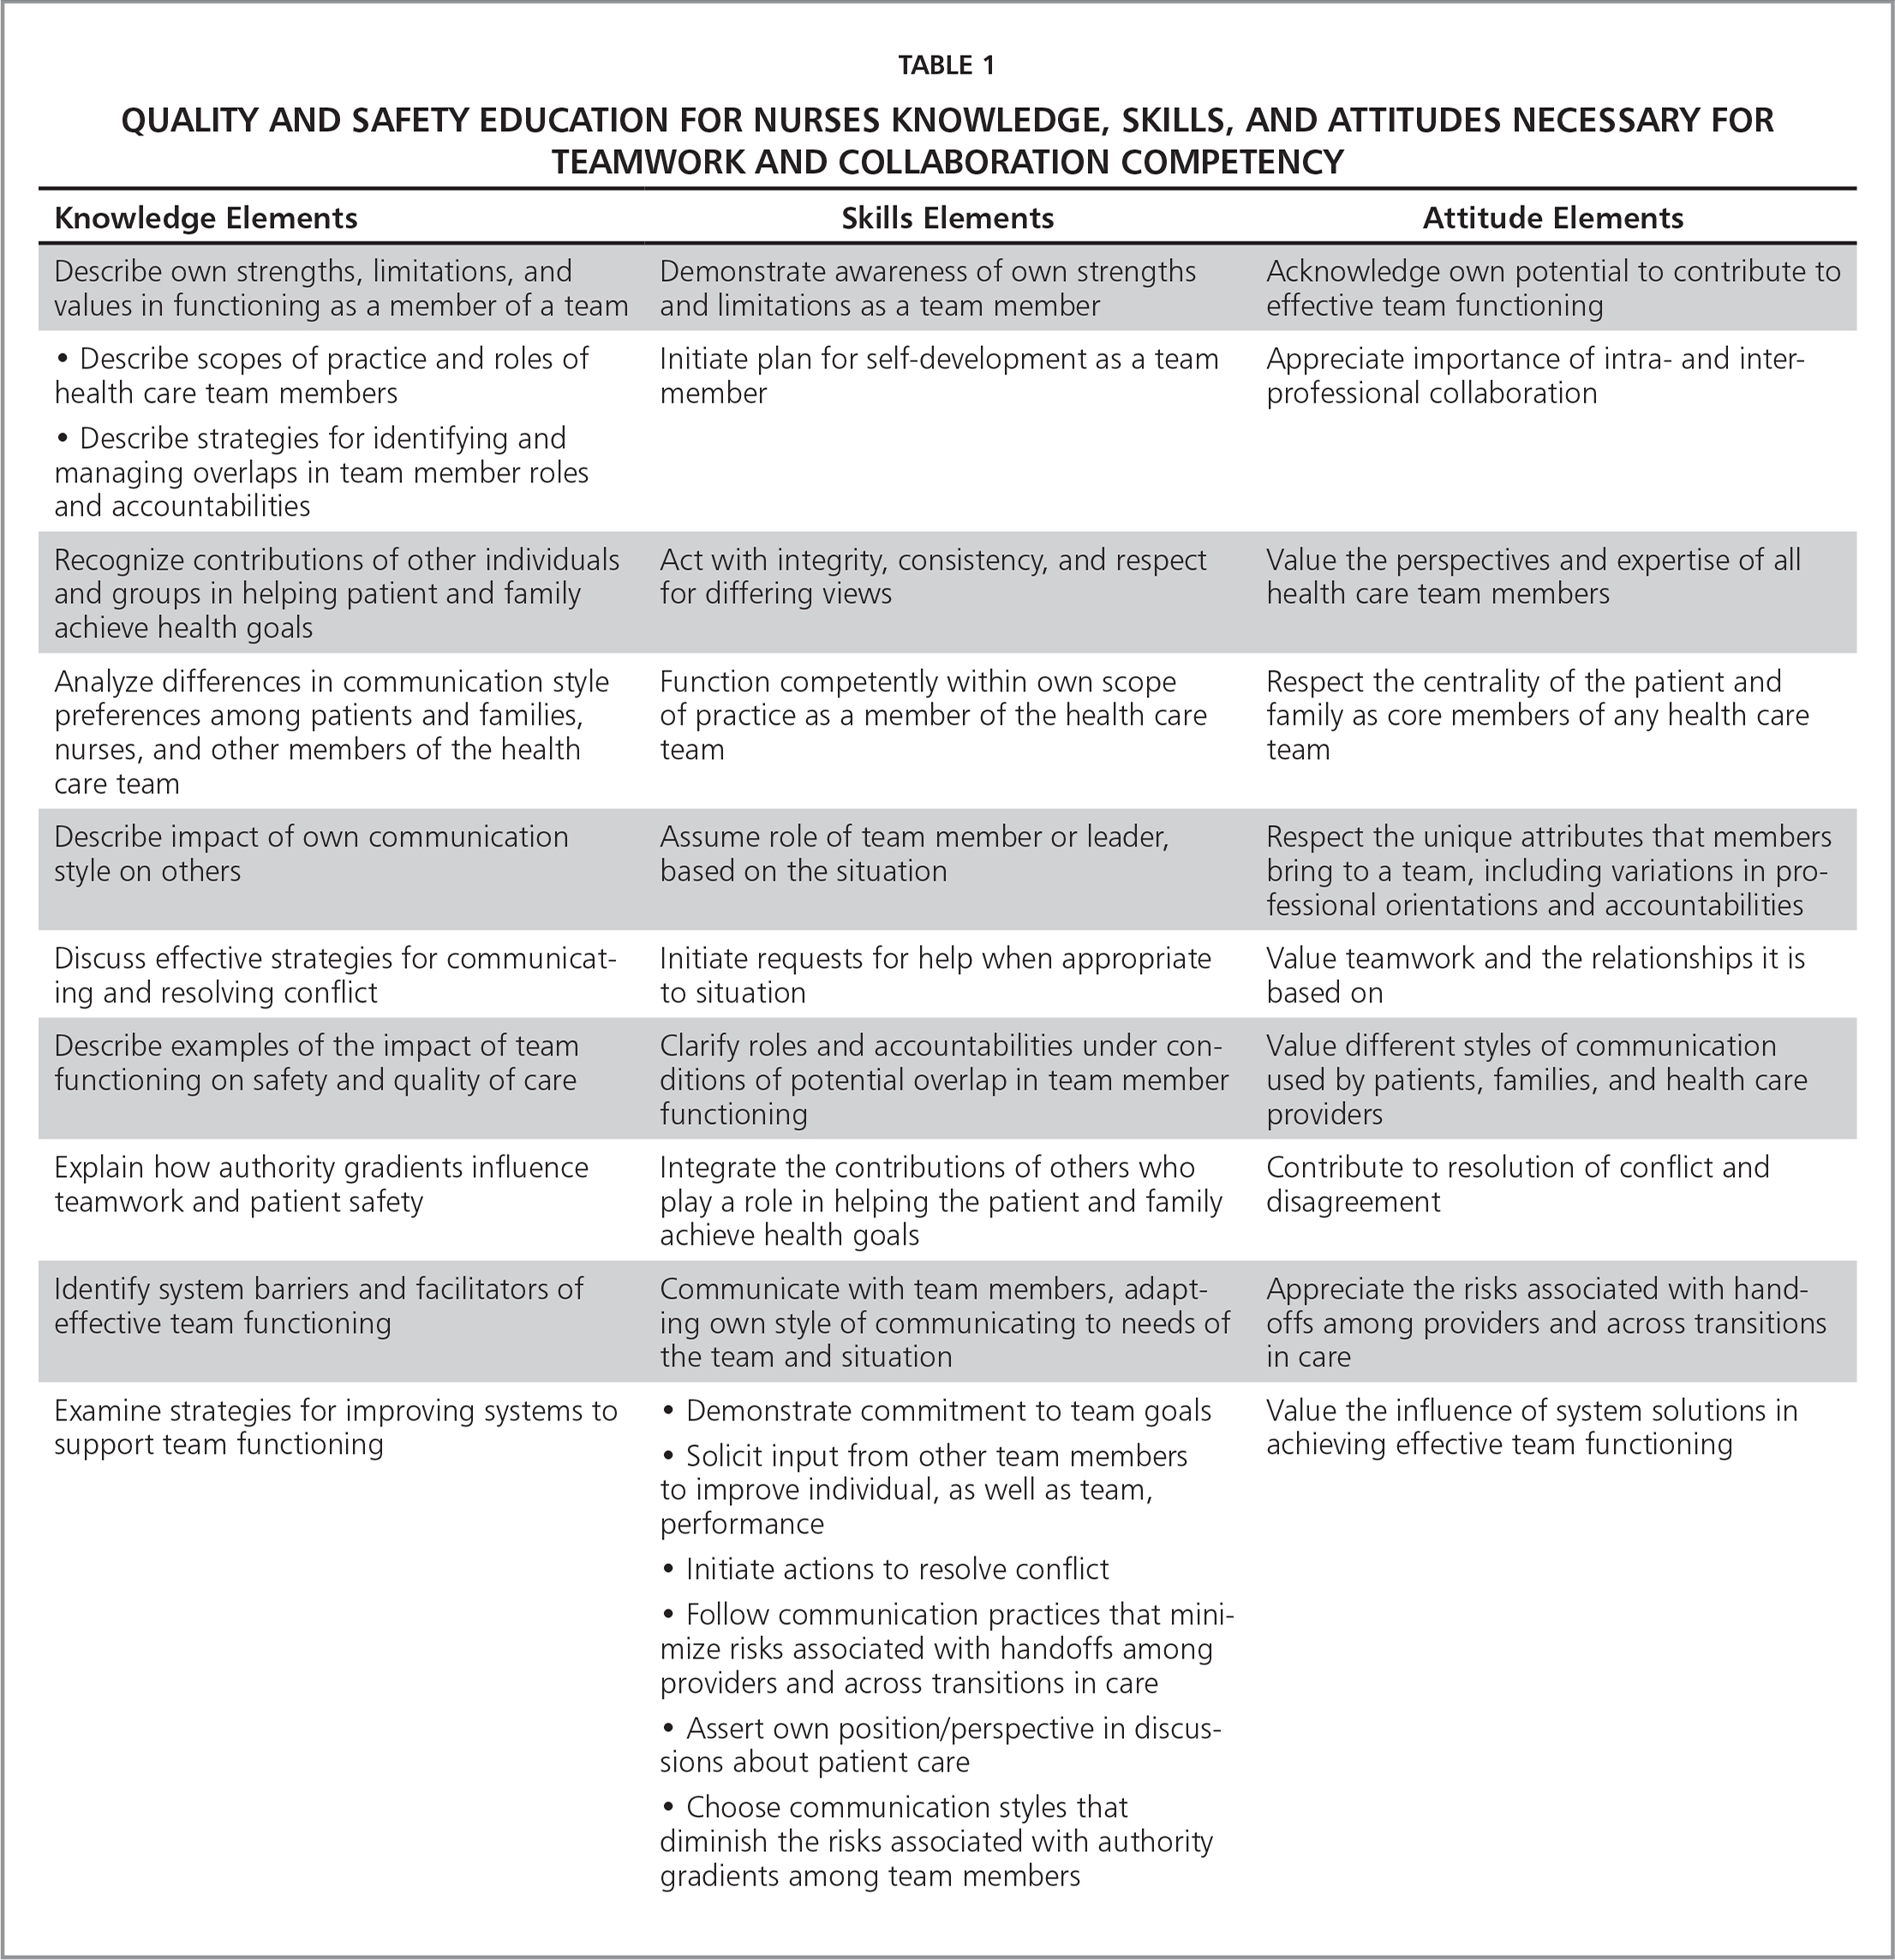 Quality and Safety Education for Nurses Knowledge, Skills, and Attitudes Necessary for Teamwork and Collaboration Competency